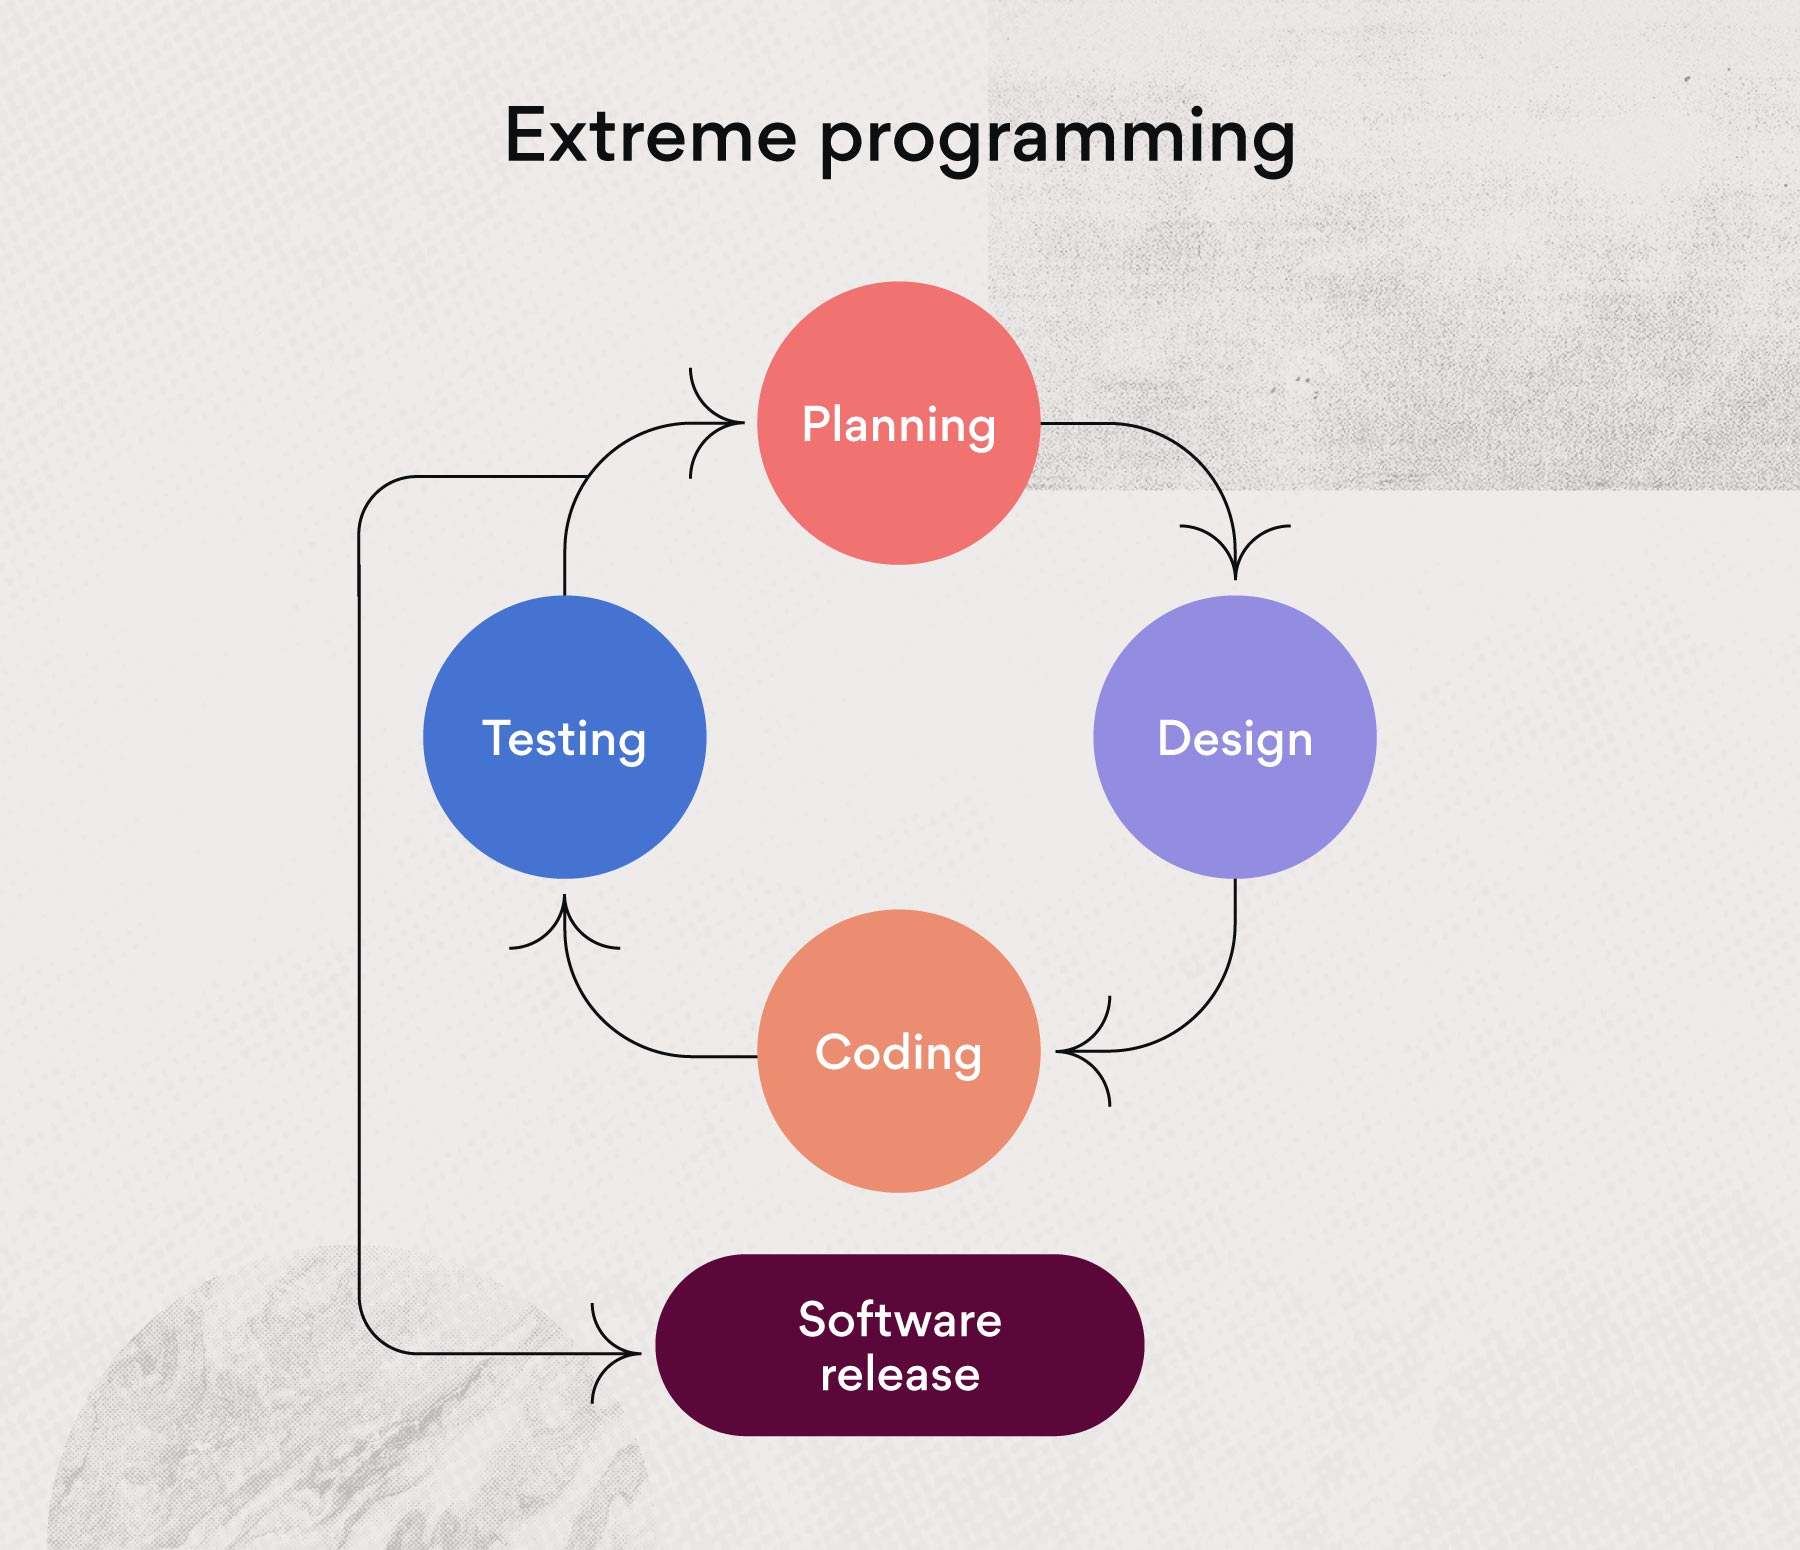 Extreme programming (XP) project management methodology